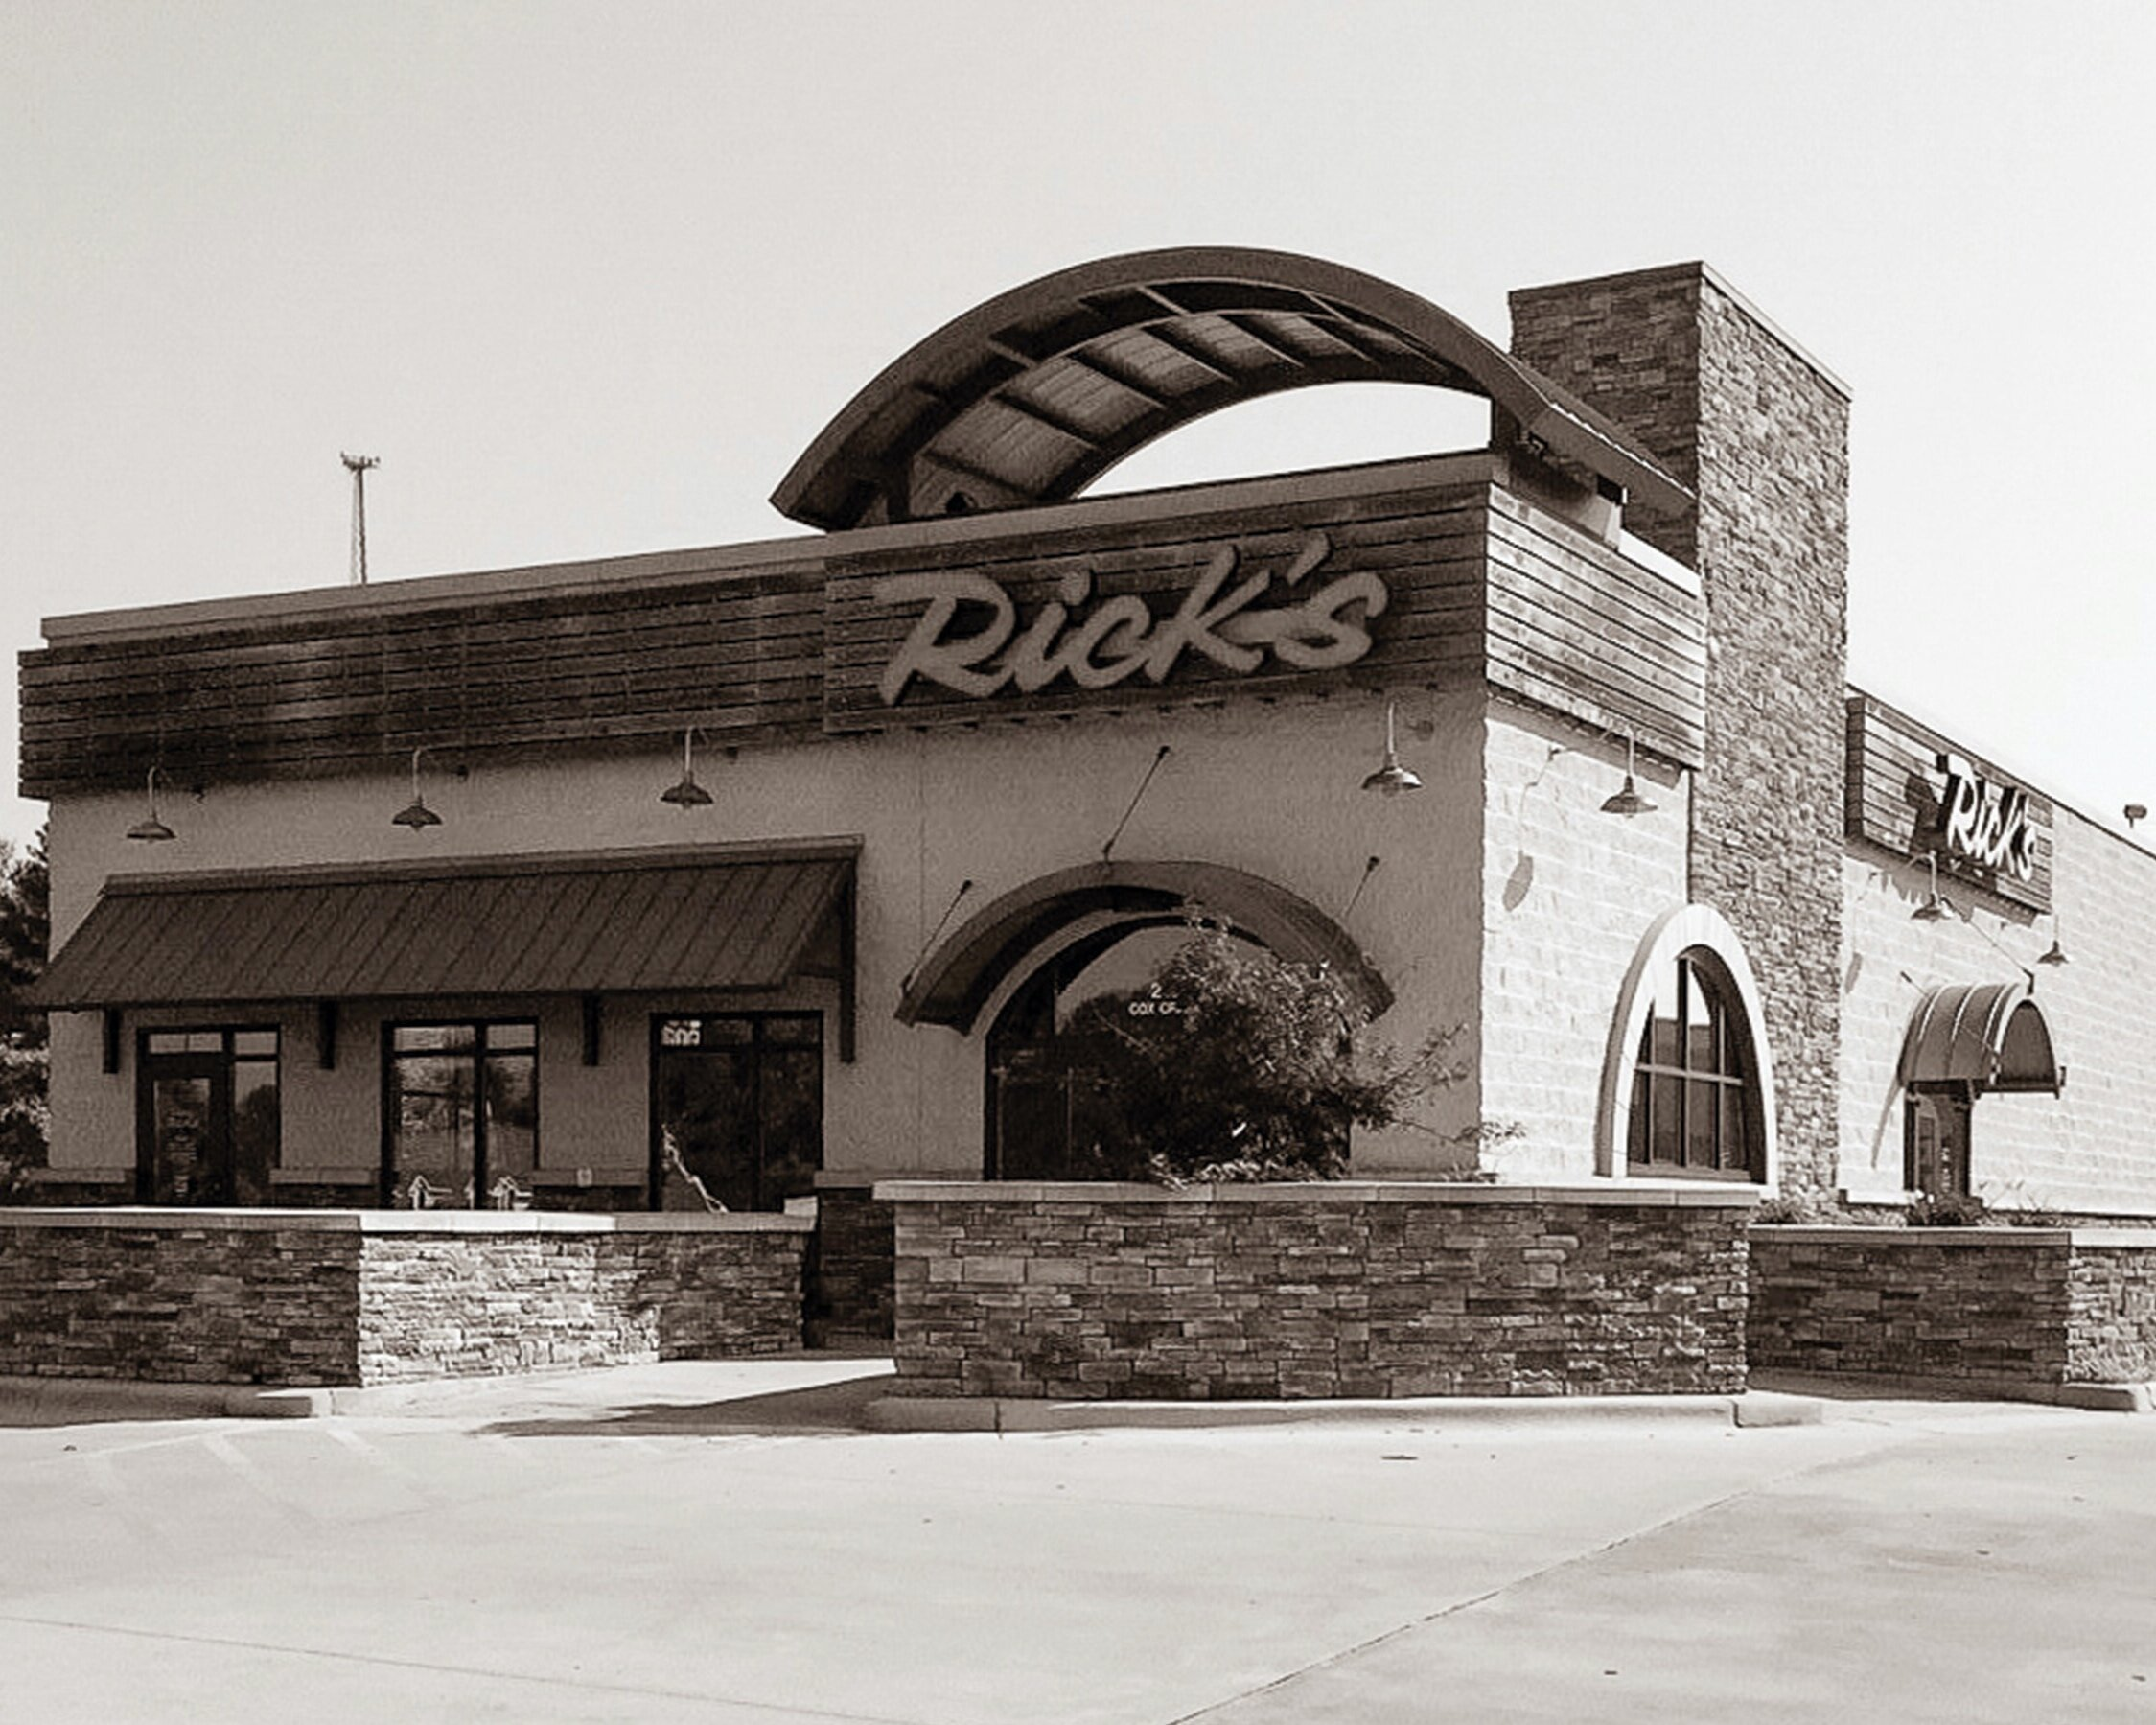 2011 - IN 2011, RICK'S RELOCATED TO ITS CURRENT LOCATION AT 212 COX CREEK PARKWAY, FLORENCE, AL 35630.